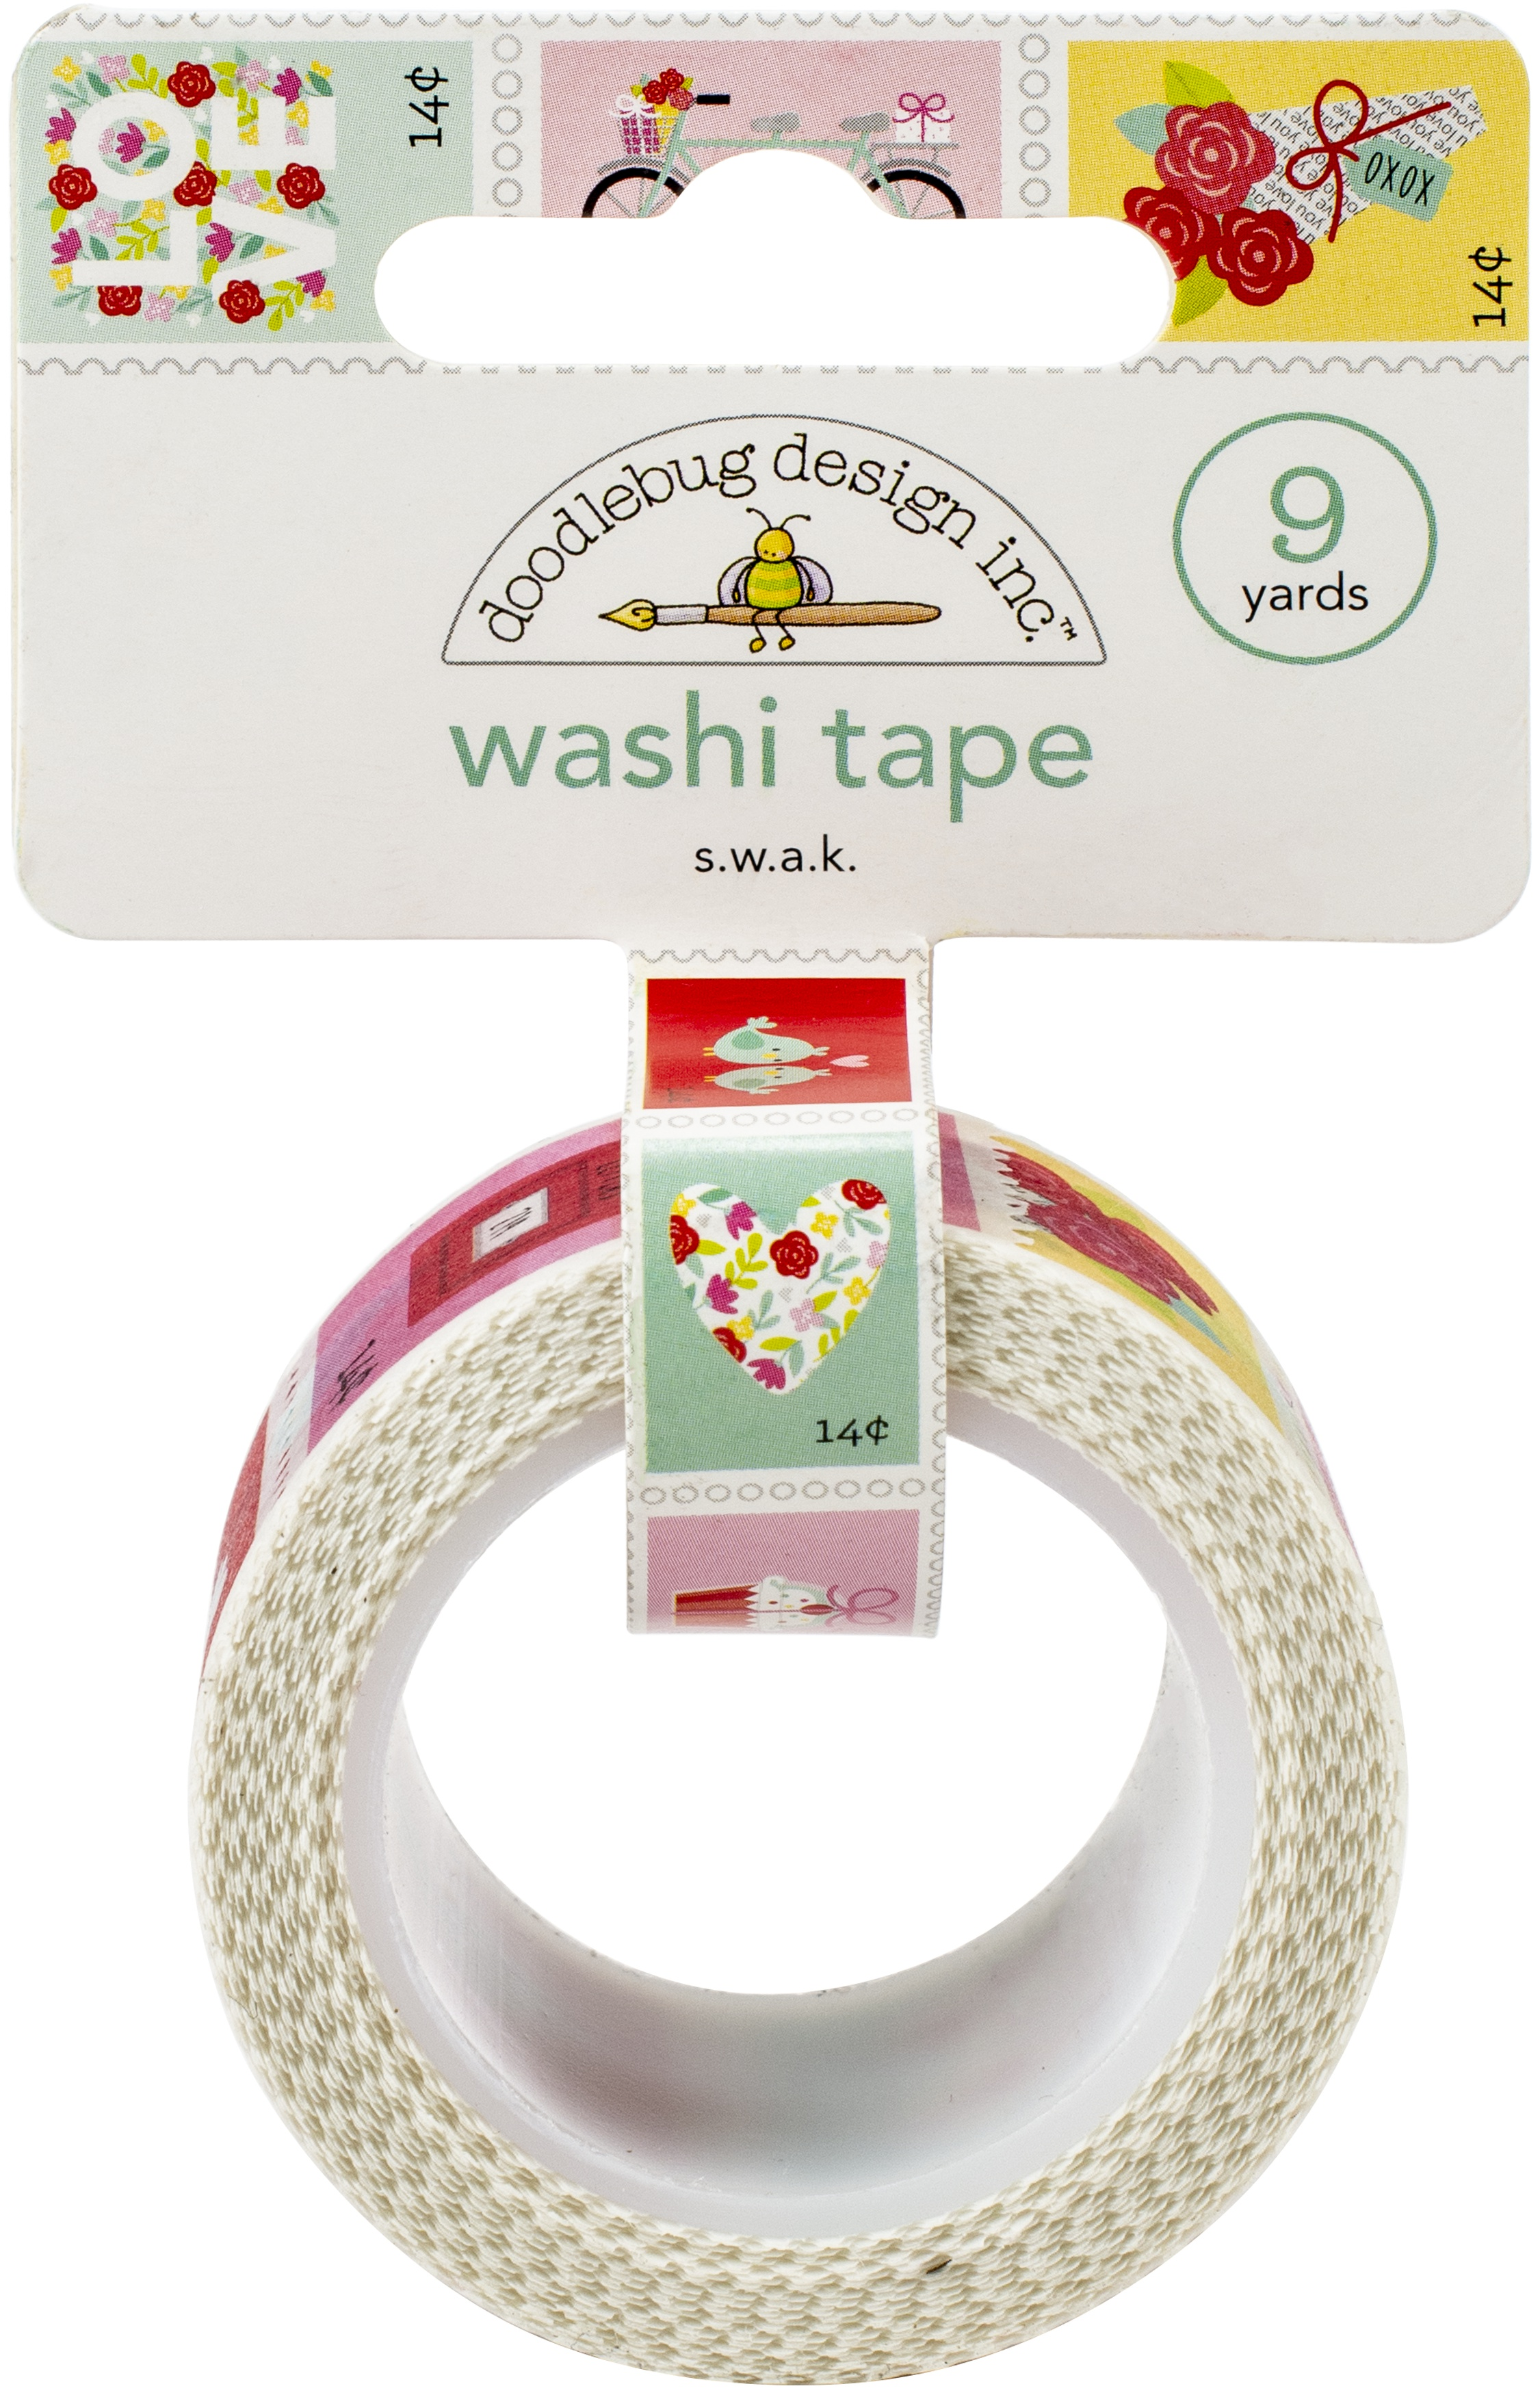 DB Washi Tape S.W.A.K.